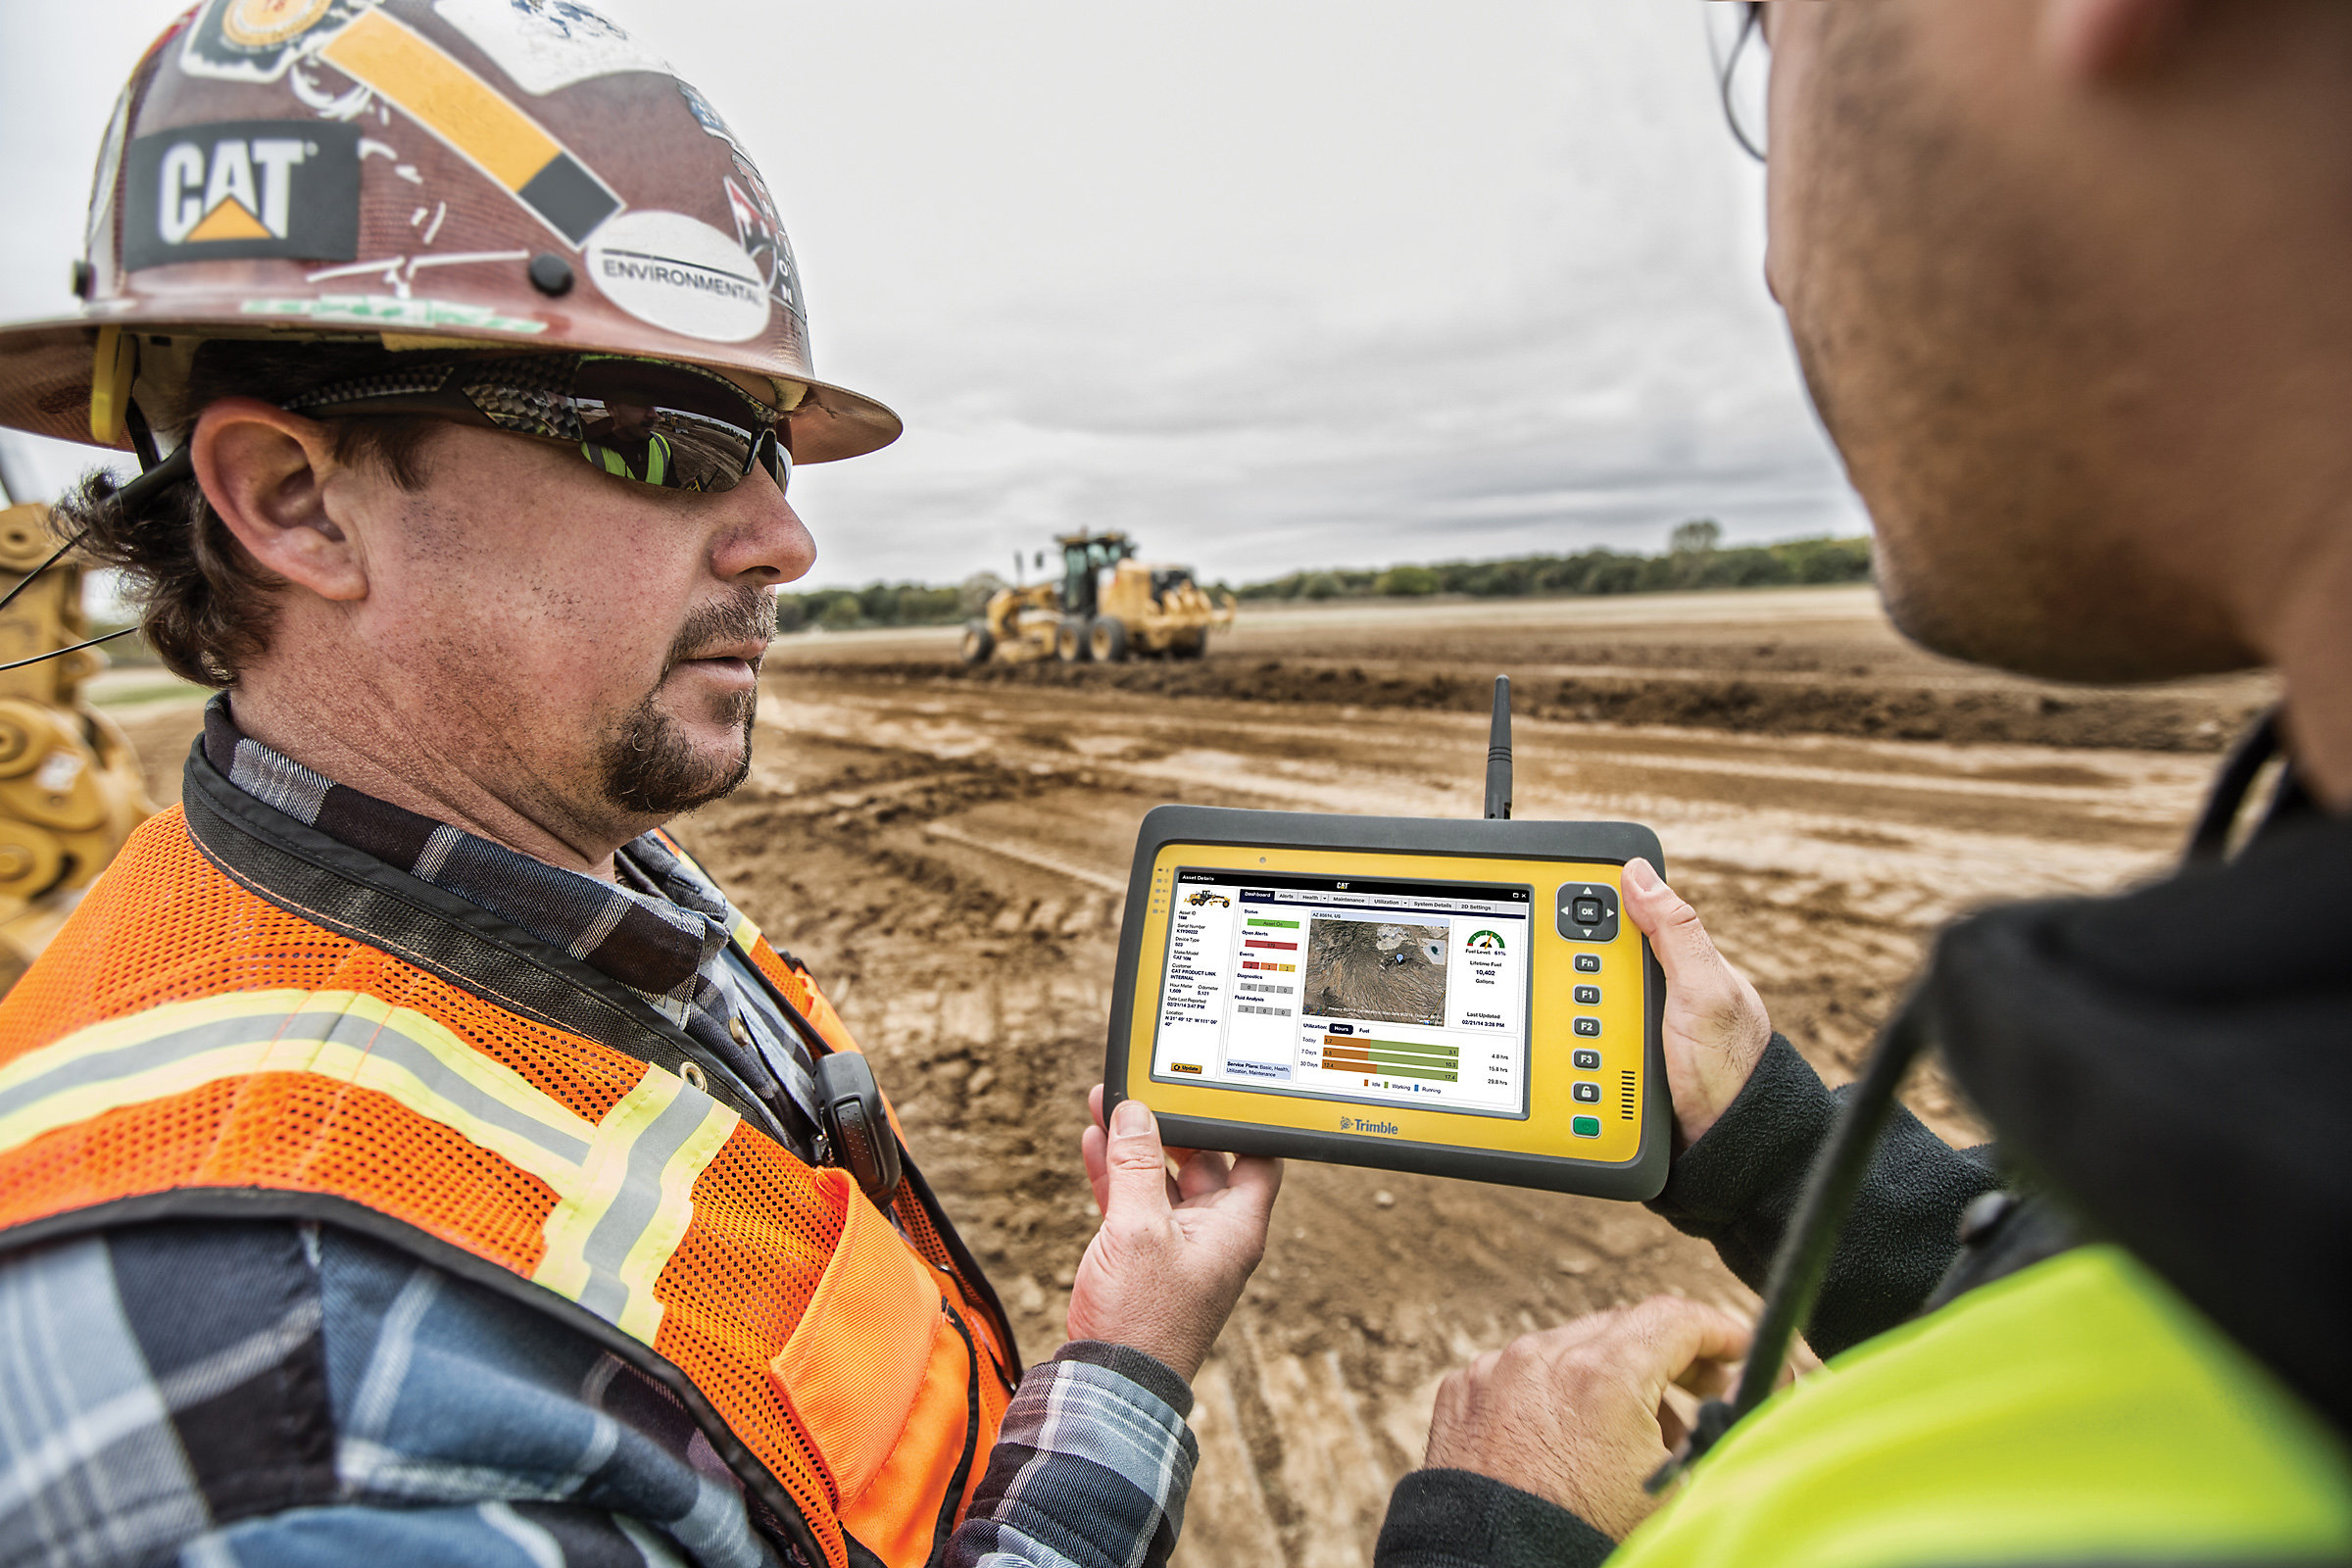 Cat | Caterpillar Introduces New Product Link™ Capabilities for